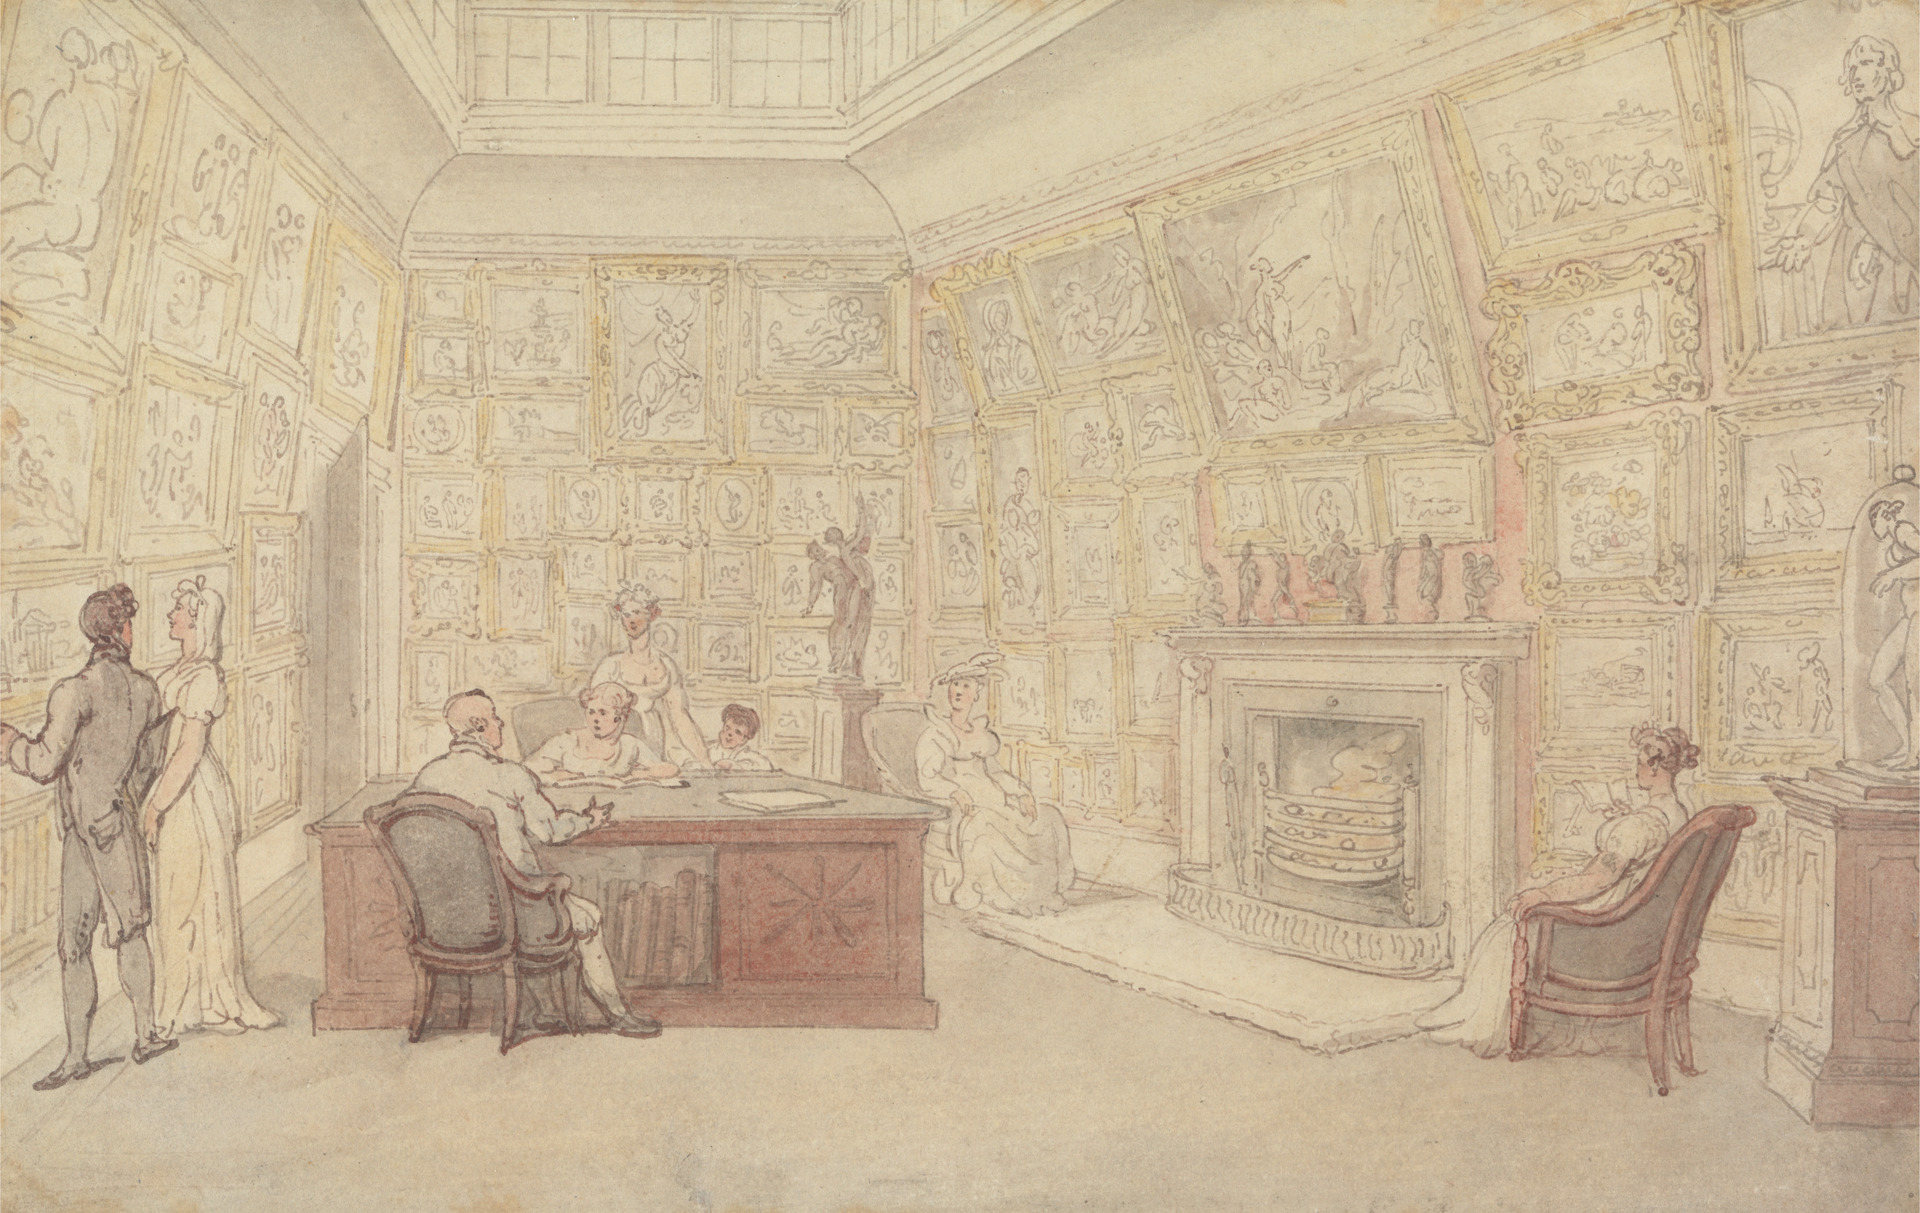 Thomas Rowlandson, A Gentleman's Gallery, undated, Watercolor and graphite with pen and gray ink and pen and brown ink on medium, slightly textured, cream wove paper, Yale Center for British Art, Paul Mellon Collection.